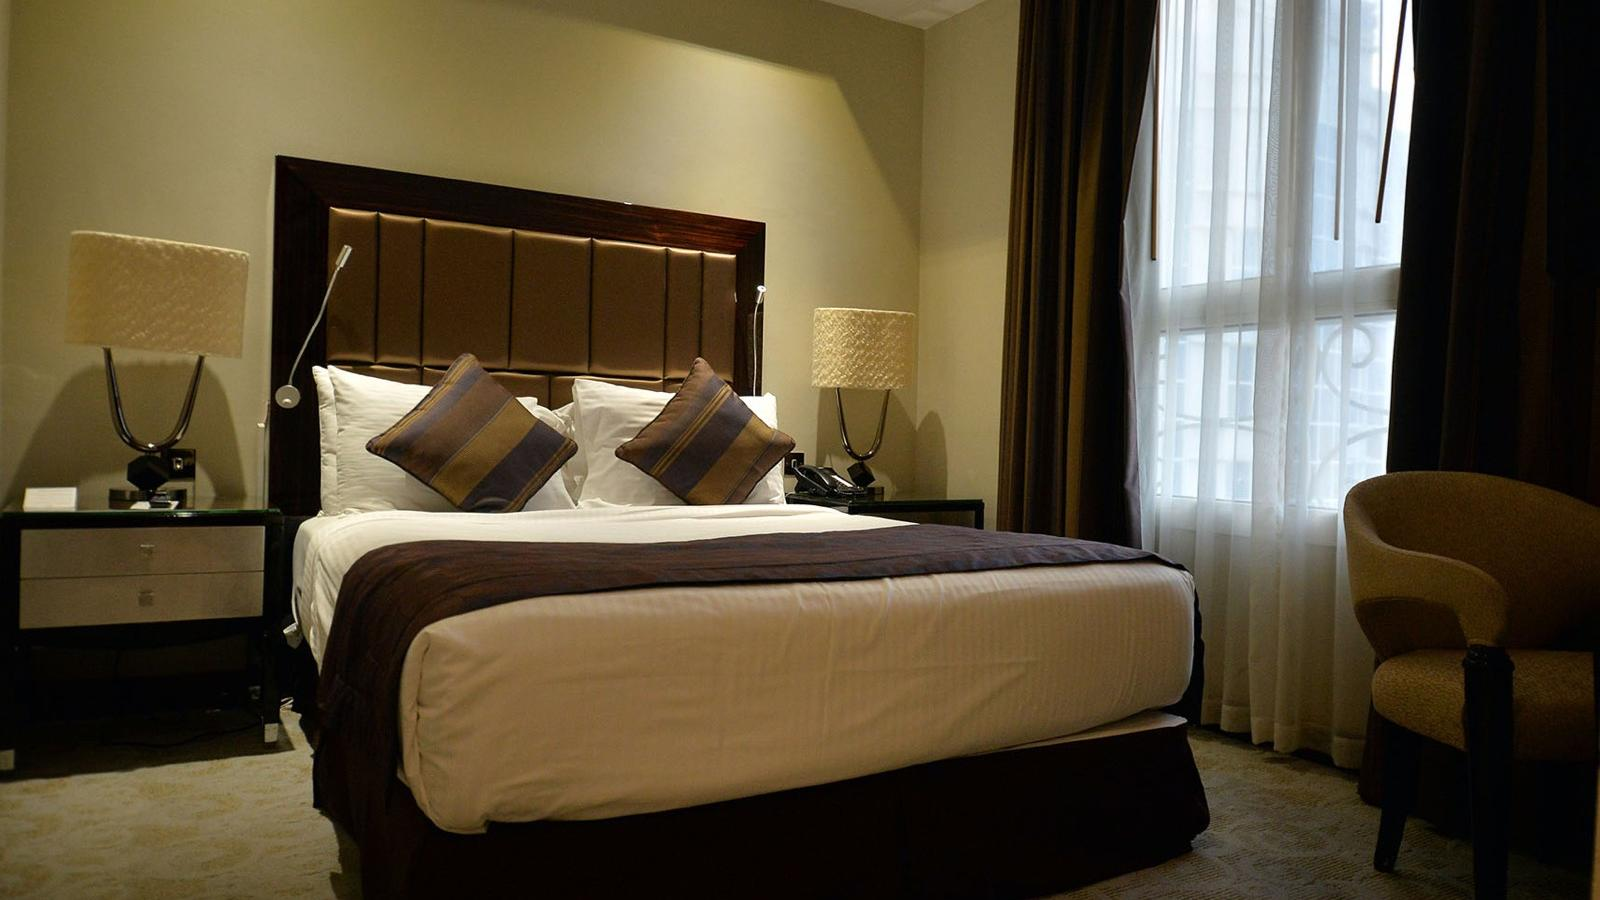 Standard Room Queen bed at Strato Hotel by Warwick